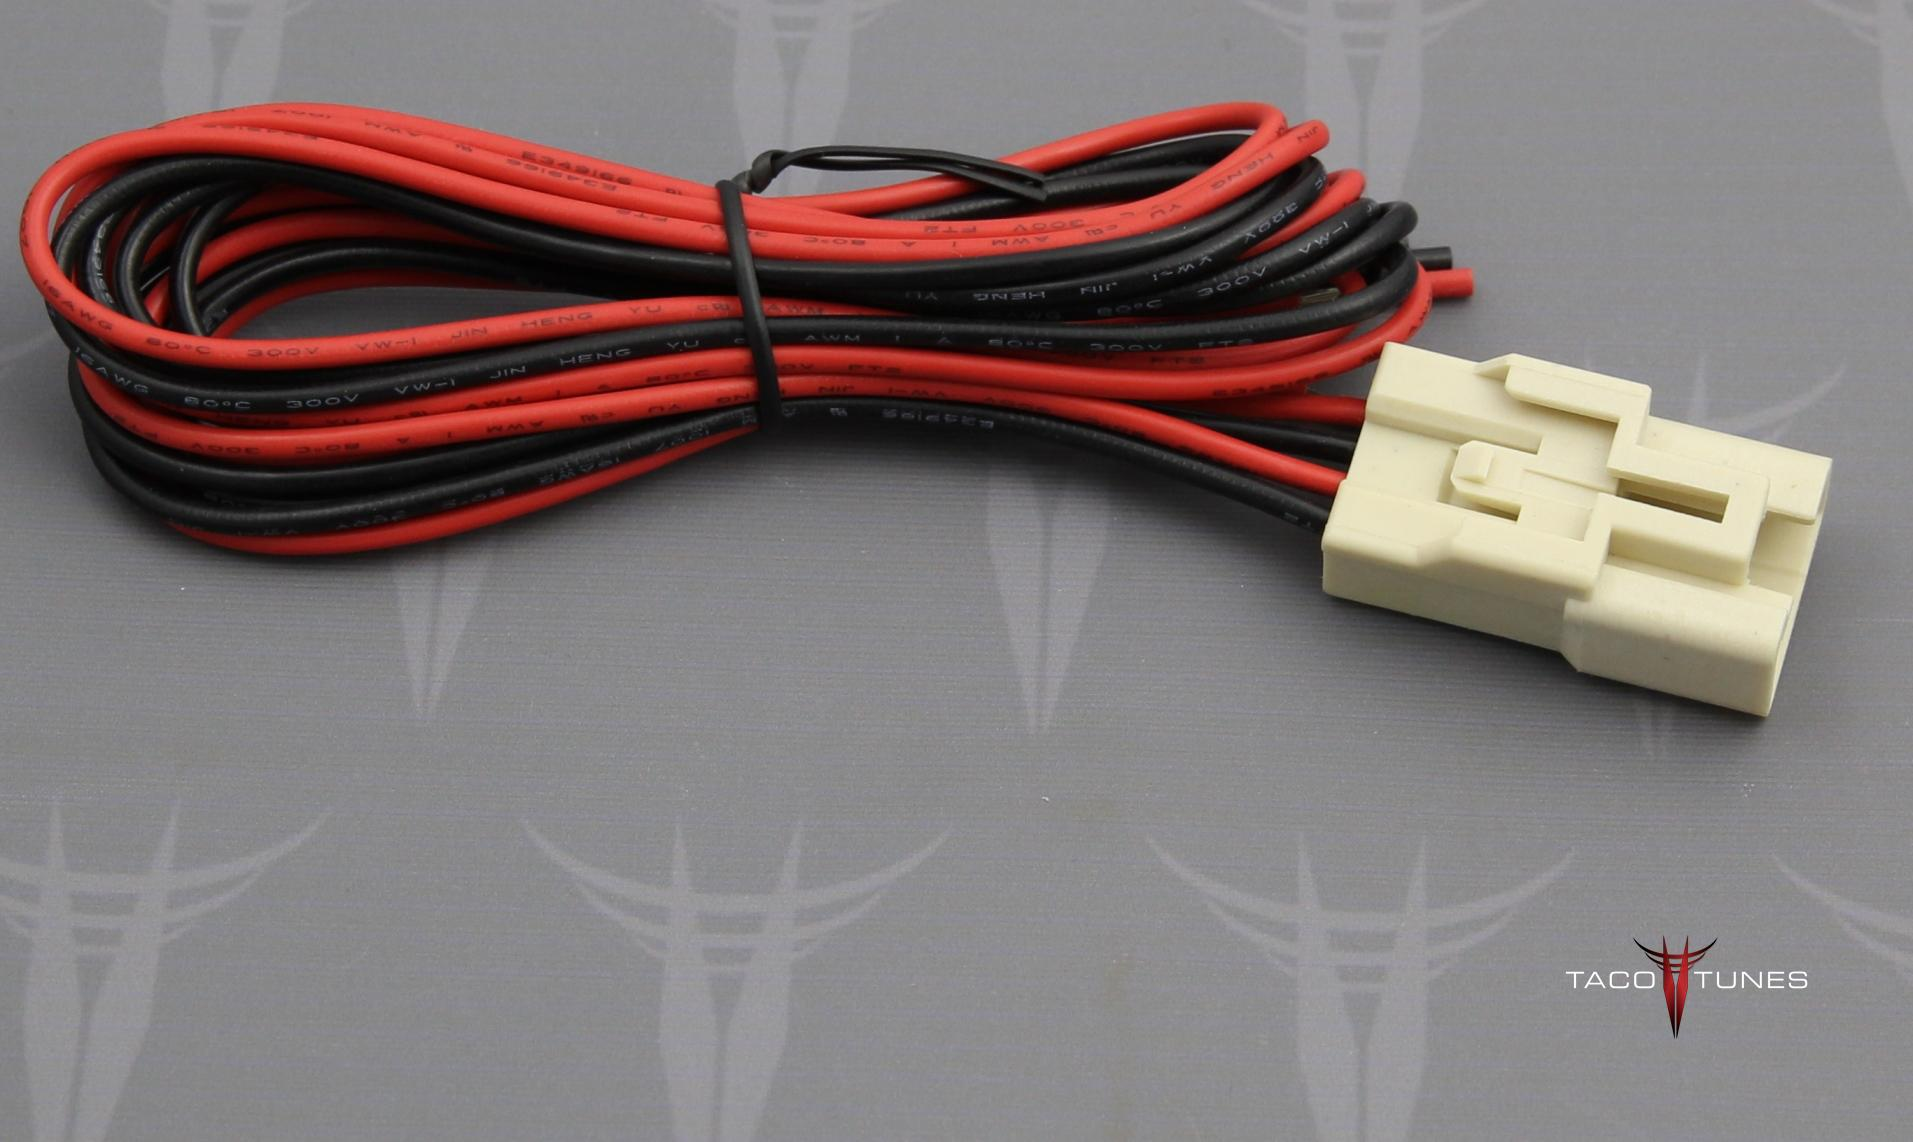 2007-2013 Toyota Tundra Tweeter Wire Harness Adapters on toyota tundra special tools, toyota tundra electrical diagram, toyota tundra front coil springs, toyota tundra sliding door, toyota tundra hitch ball, toyota tundra fusible link, toyota tundra sensors, 2007 toyota wiring harness, toyota tundra dash switch, toyota tundra double din stereo, toyota tundra control knobs, toyota tundra trailer wiring, toyota wiring harness diagram, toyota tundra headlamp, toyota tundra towing a trailer, toyota corolla wiring harness, toyota tundra u joint, toyota tundra driveshaft, toyota tundra washer nozzle, toyota tundra toggle switch,